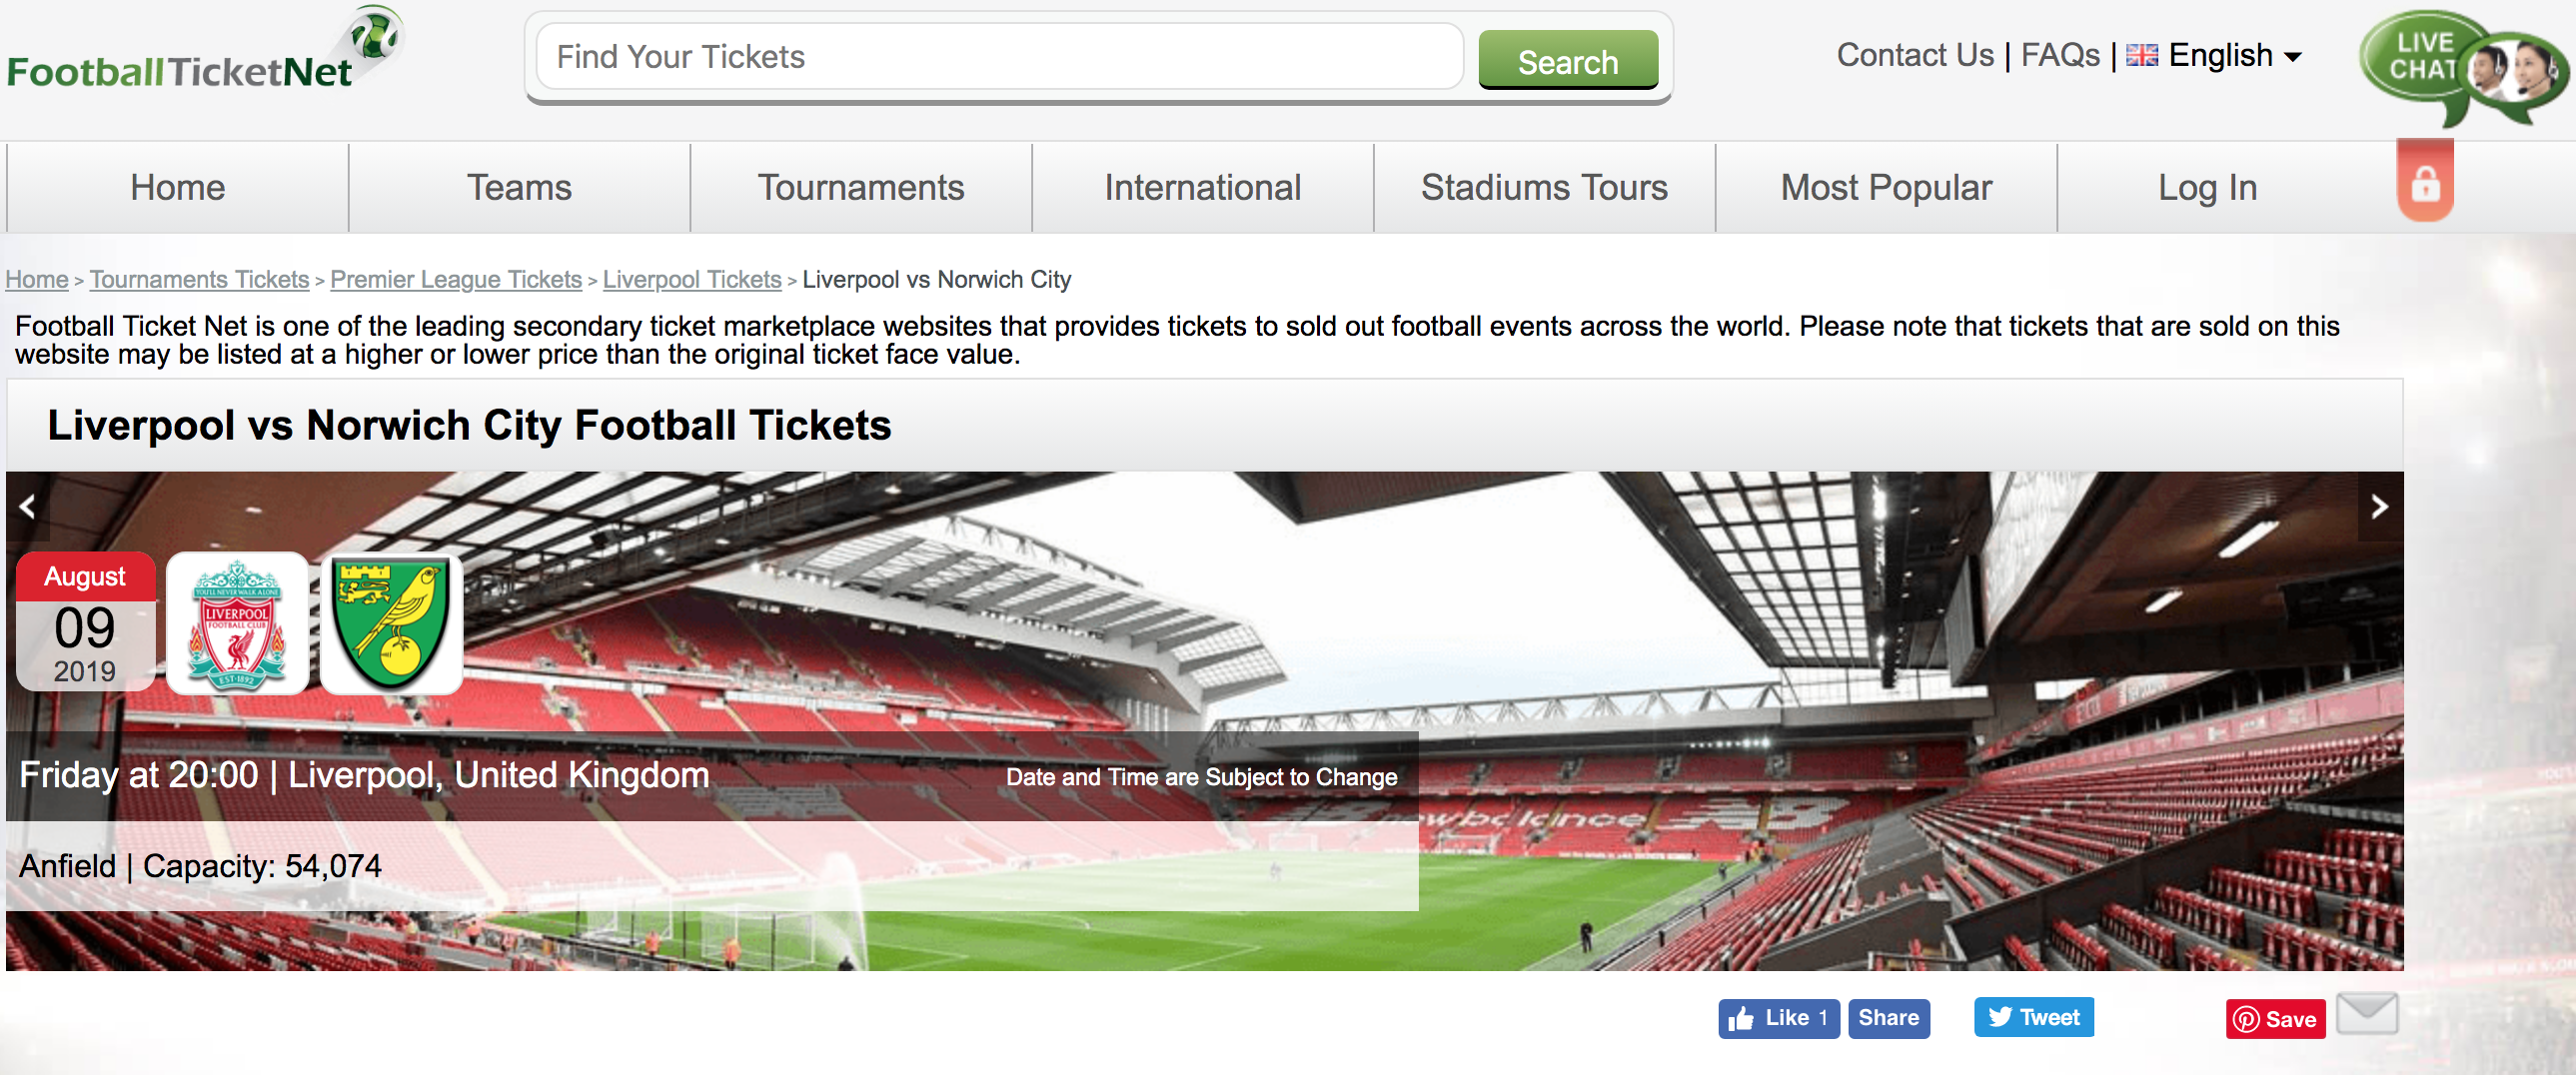 1837a0b4457c5e5cbbc75d0b5736e4fd - How To Get Liverpool Tickets Without Being A Member